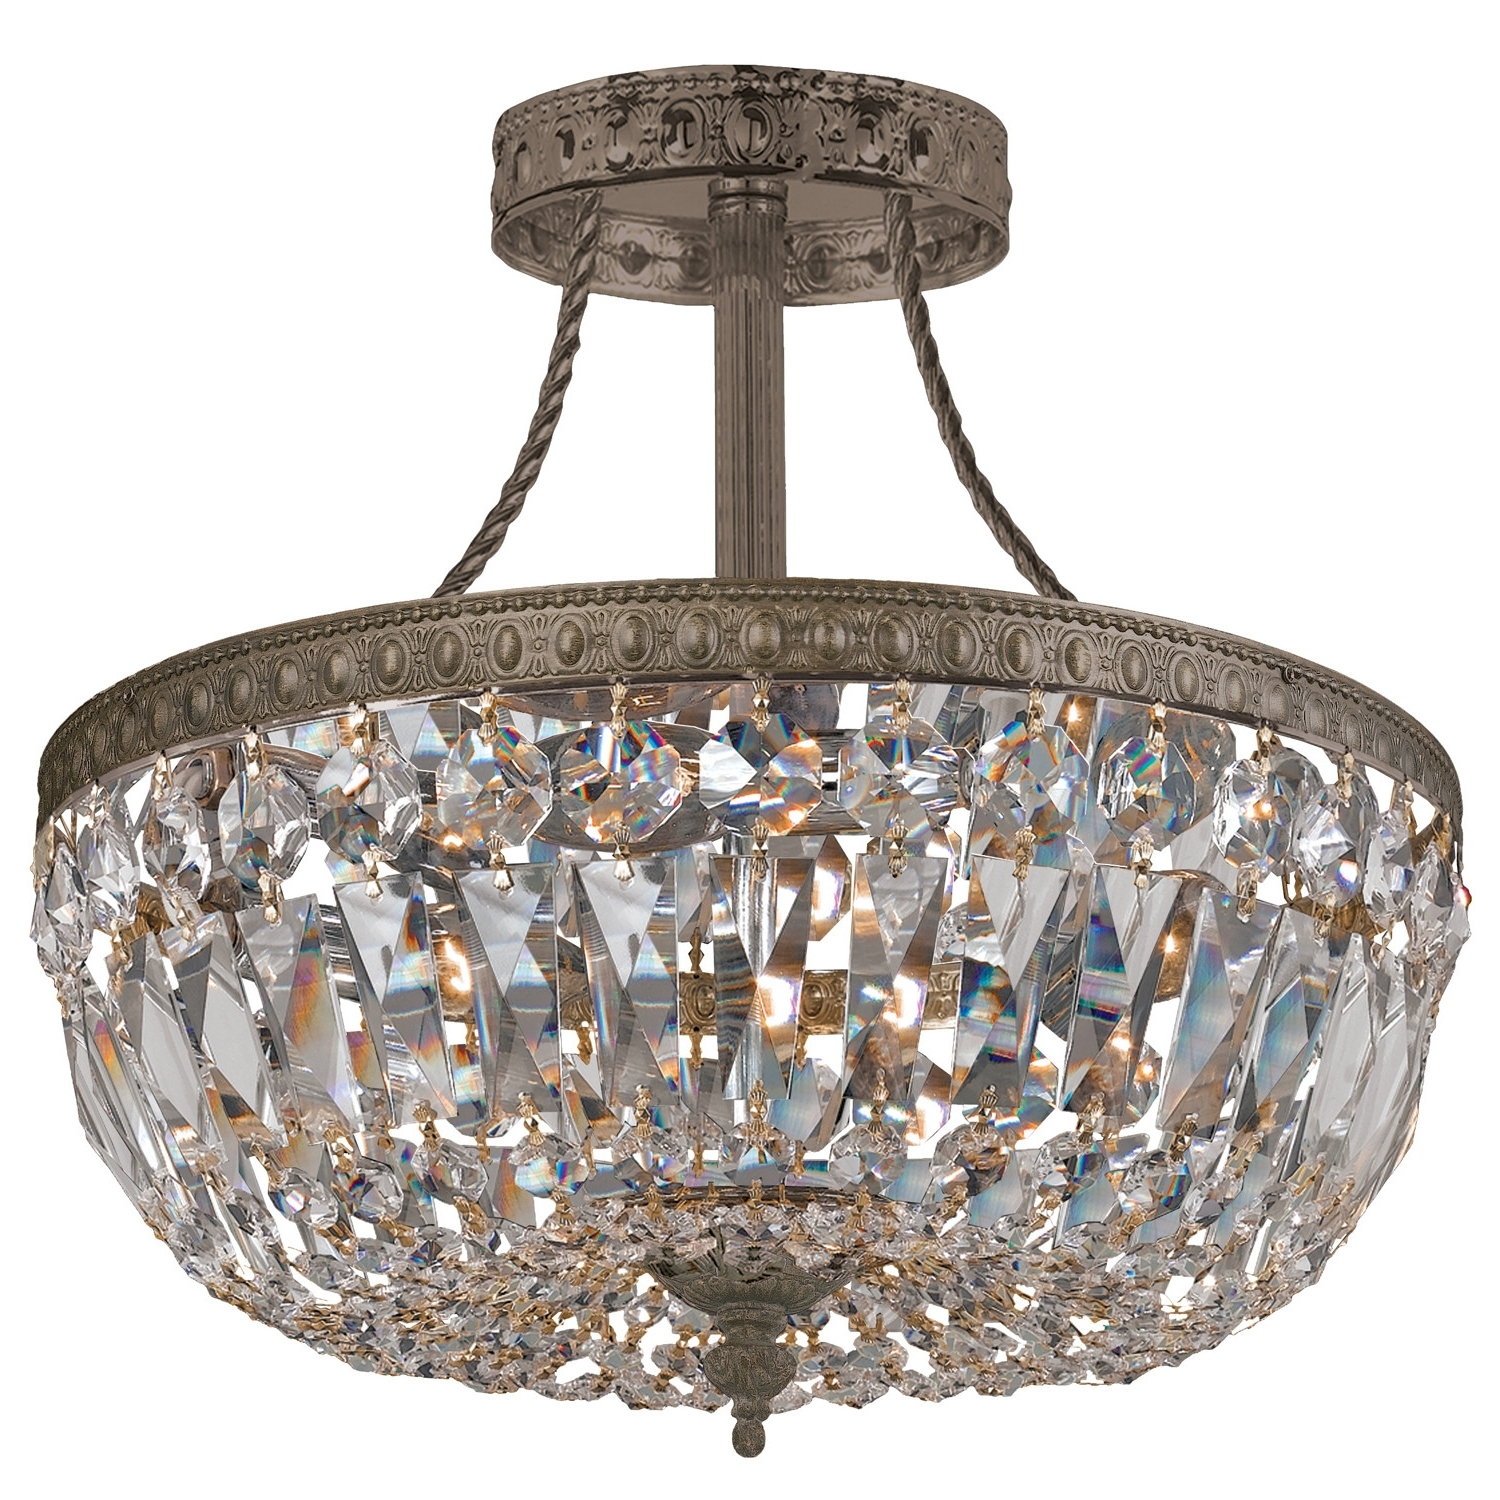 Wall Mount Crystal Chandeliers Within Most Current Crystal Flush Mount Chandelier – Espan (View 17 of 20)